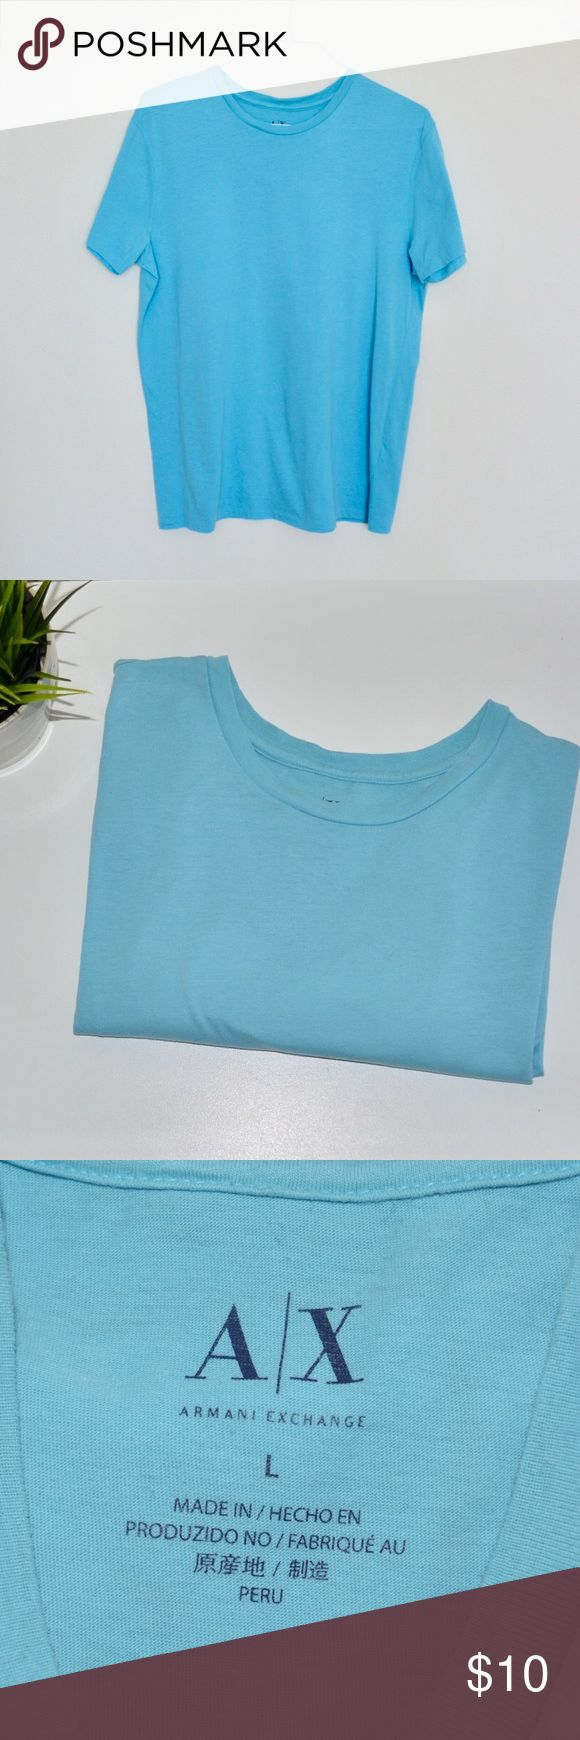 🔹Armani Exchange Men's T-shirt🔹 Simple light blue Armani Exchange men's t Shirt in size L. Been worn a handful of time, one small hole near the label on the right side at the bottom ! Stored in a smoke free home. 💥🎉bundle 3+ for 15%🎉💥 A/X Armani Exchange Shirts Tees - Short Sleeve